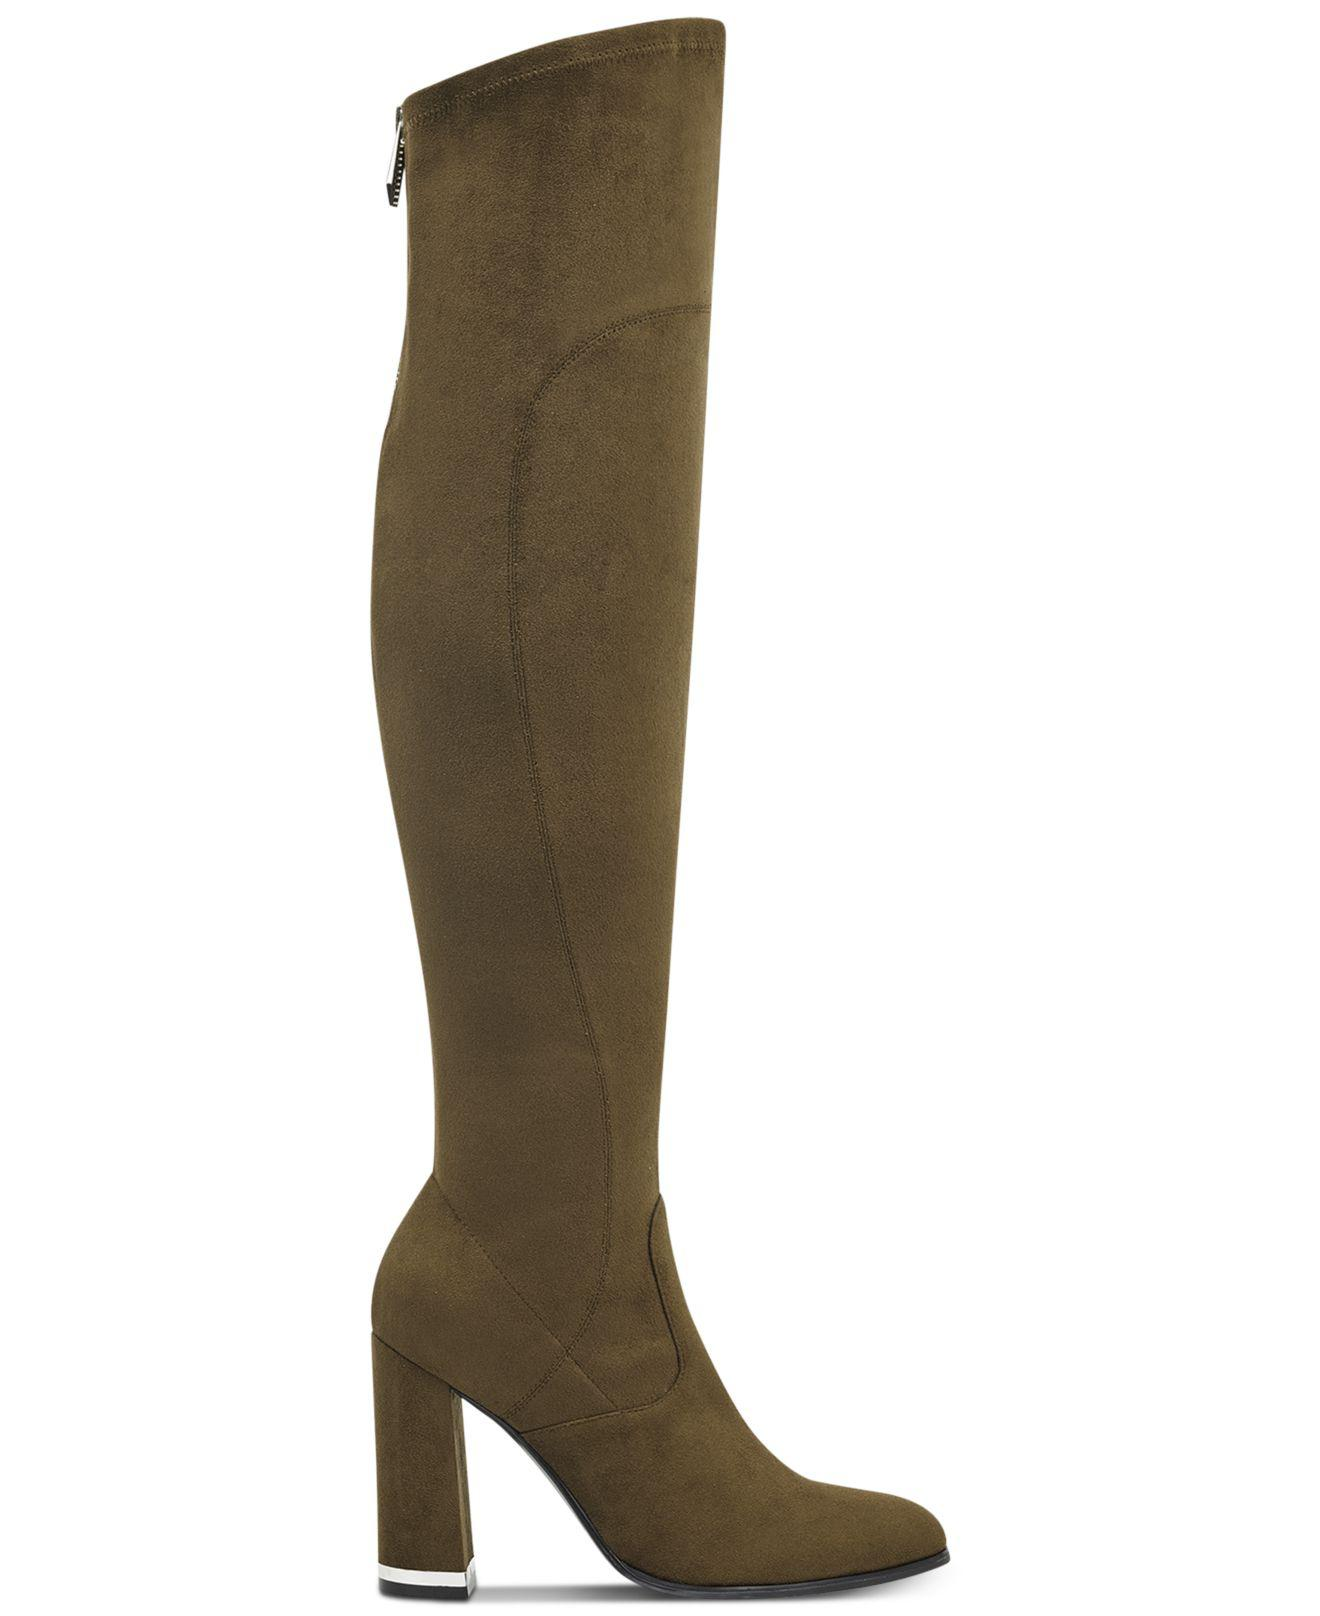 3e5c419a2d9 Lyst - Marc Fisher Natier Over-the-knee Boots in Green